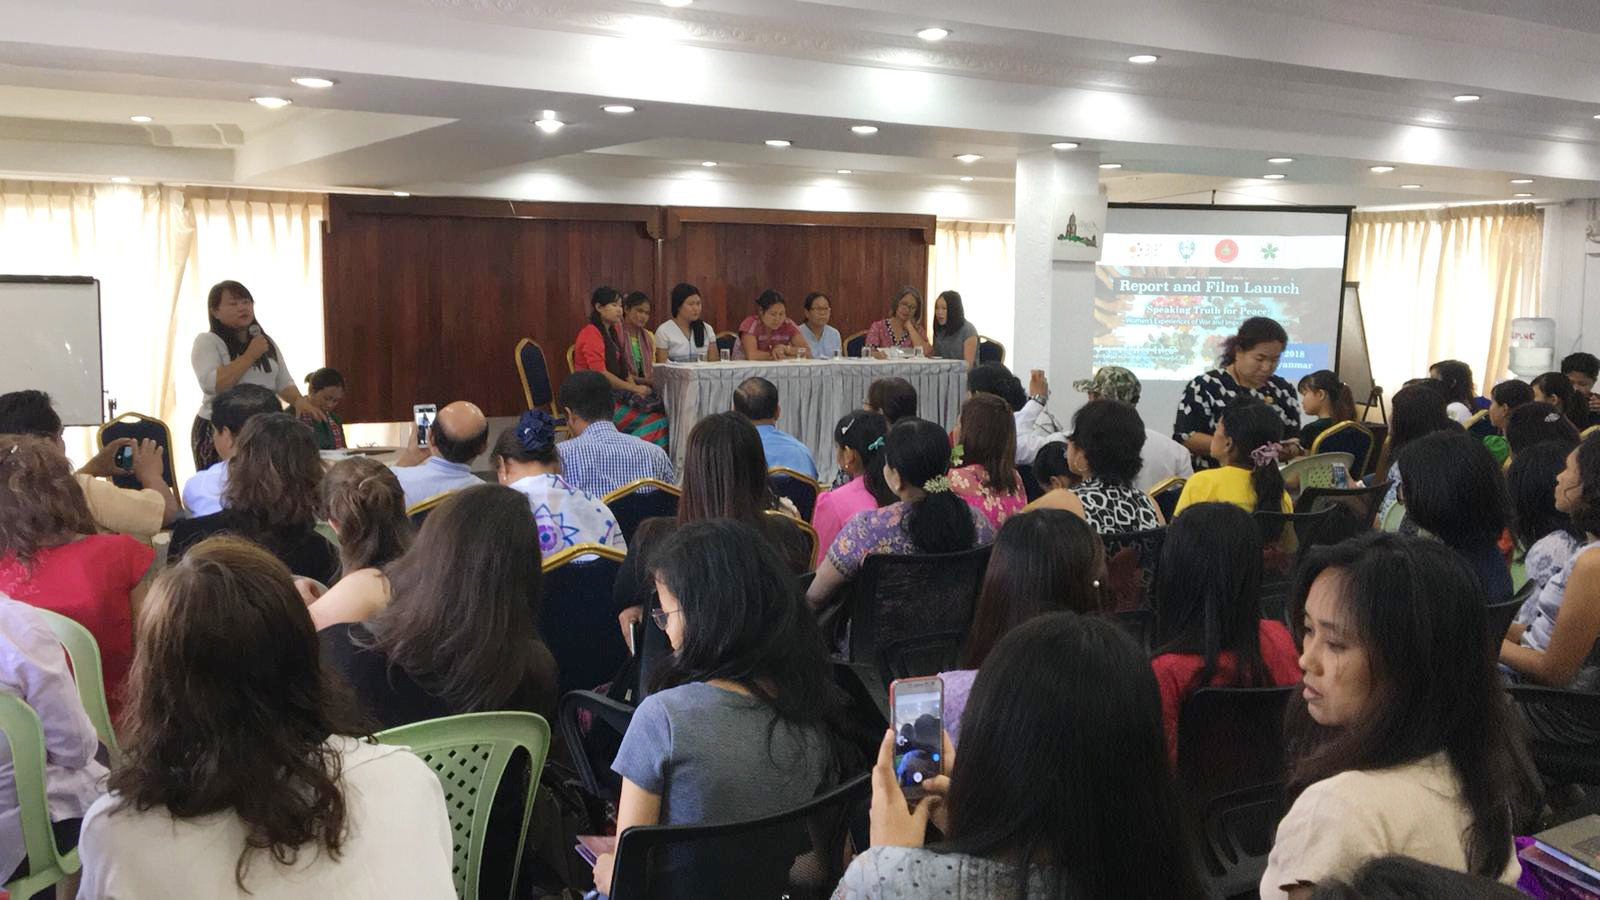 Press Release - Speaking Truth for Peace: Women's Experiences of War and Impunity in Myanmar